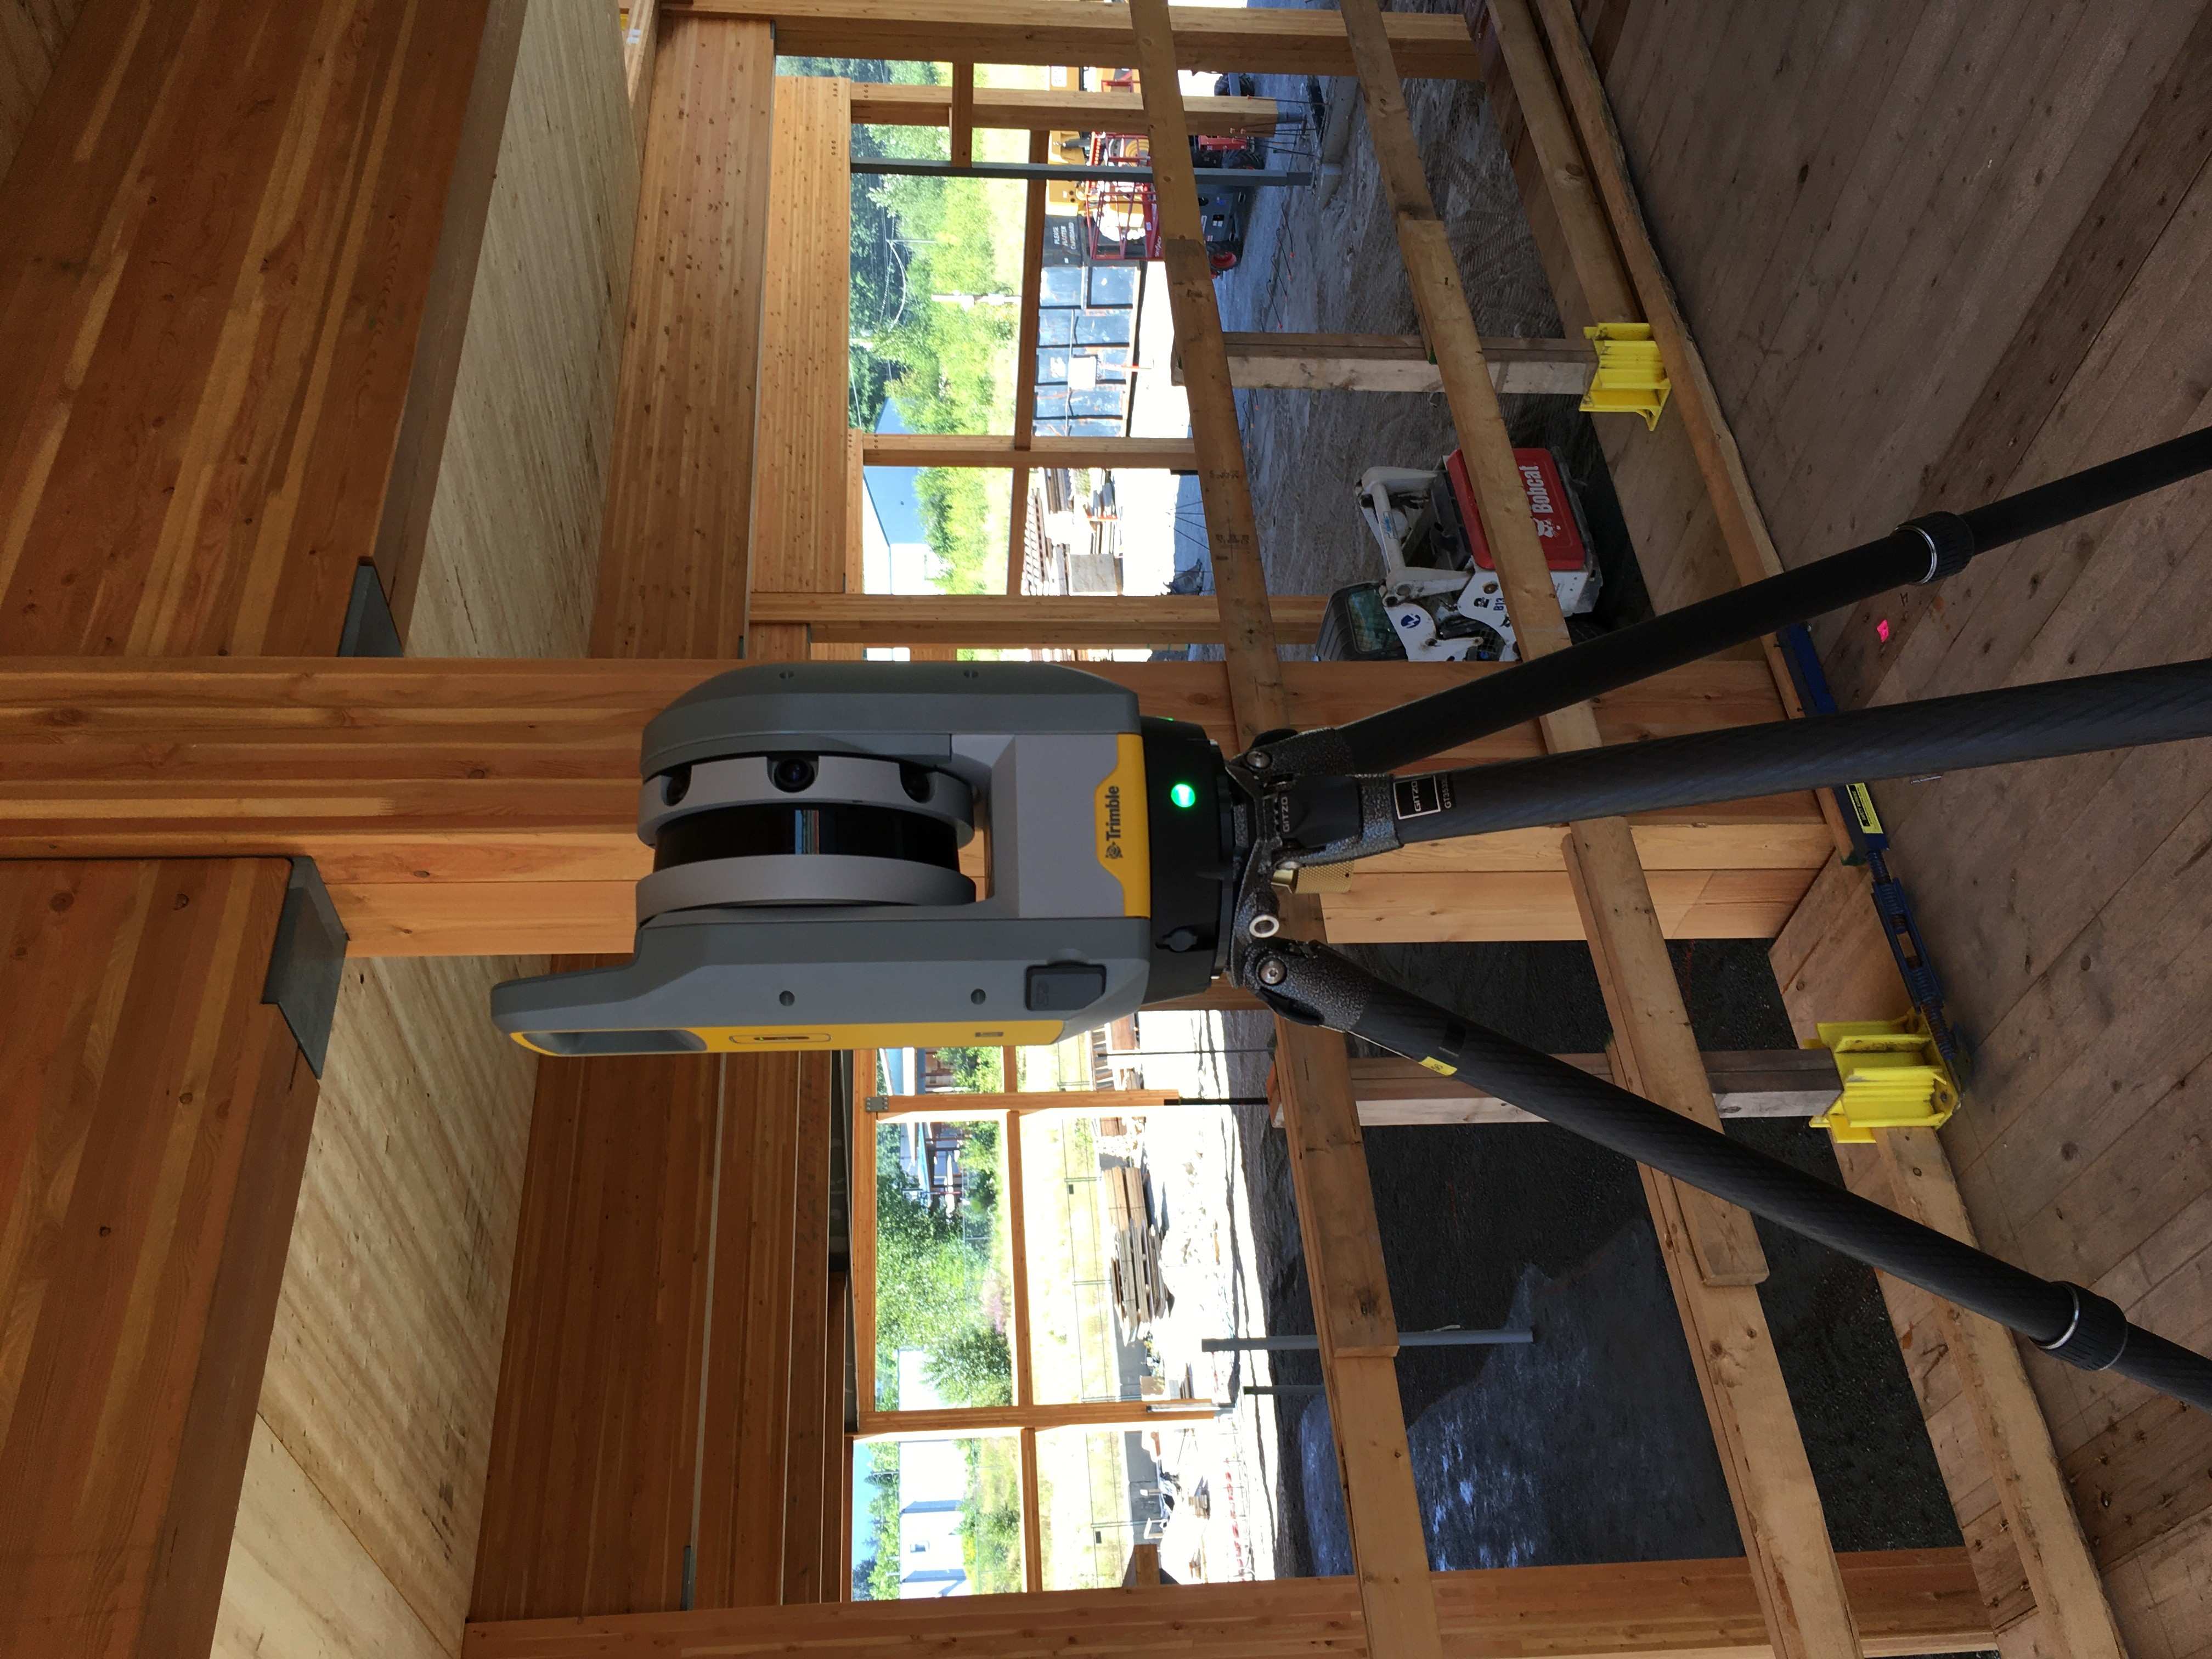 Squamish, BC: Trimble X7 used to create a deviation analysis on a mass timber development